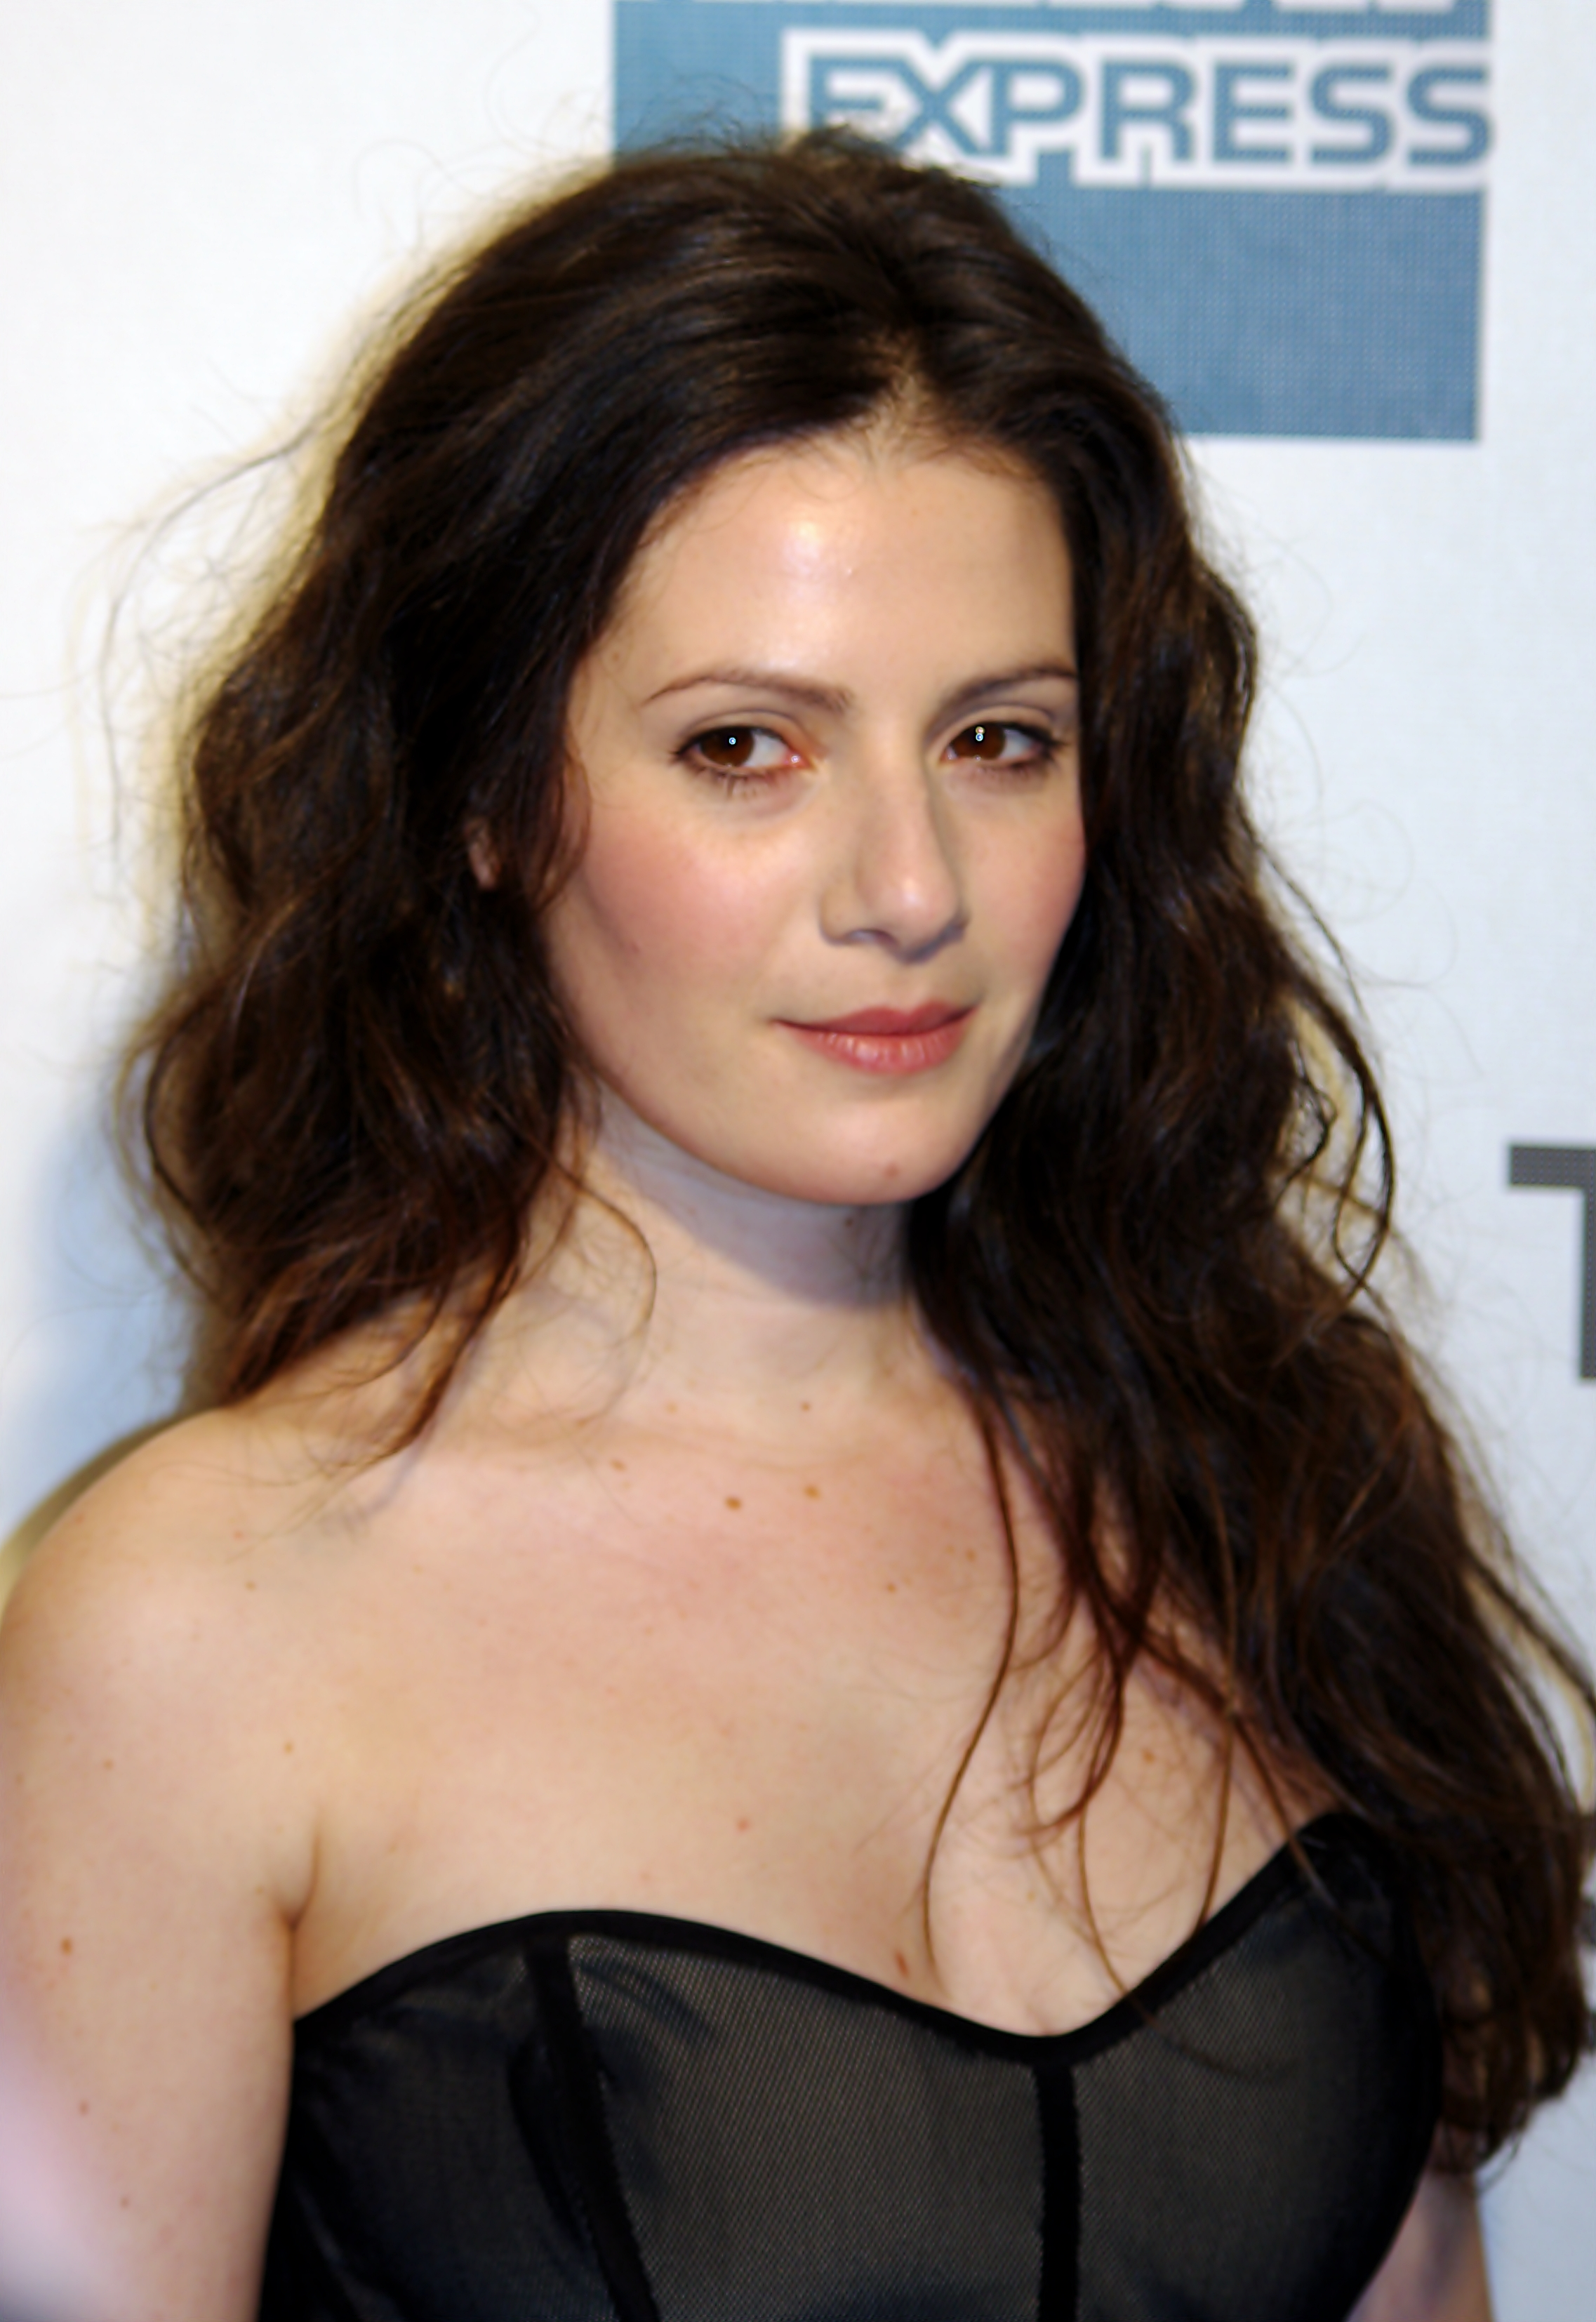 image Aleksa palladino amp lisa joyce boardwalk empire